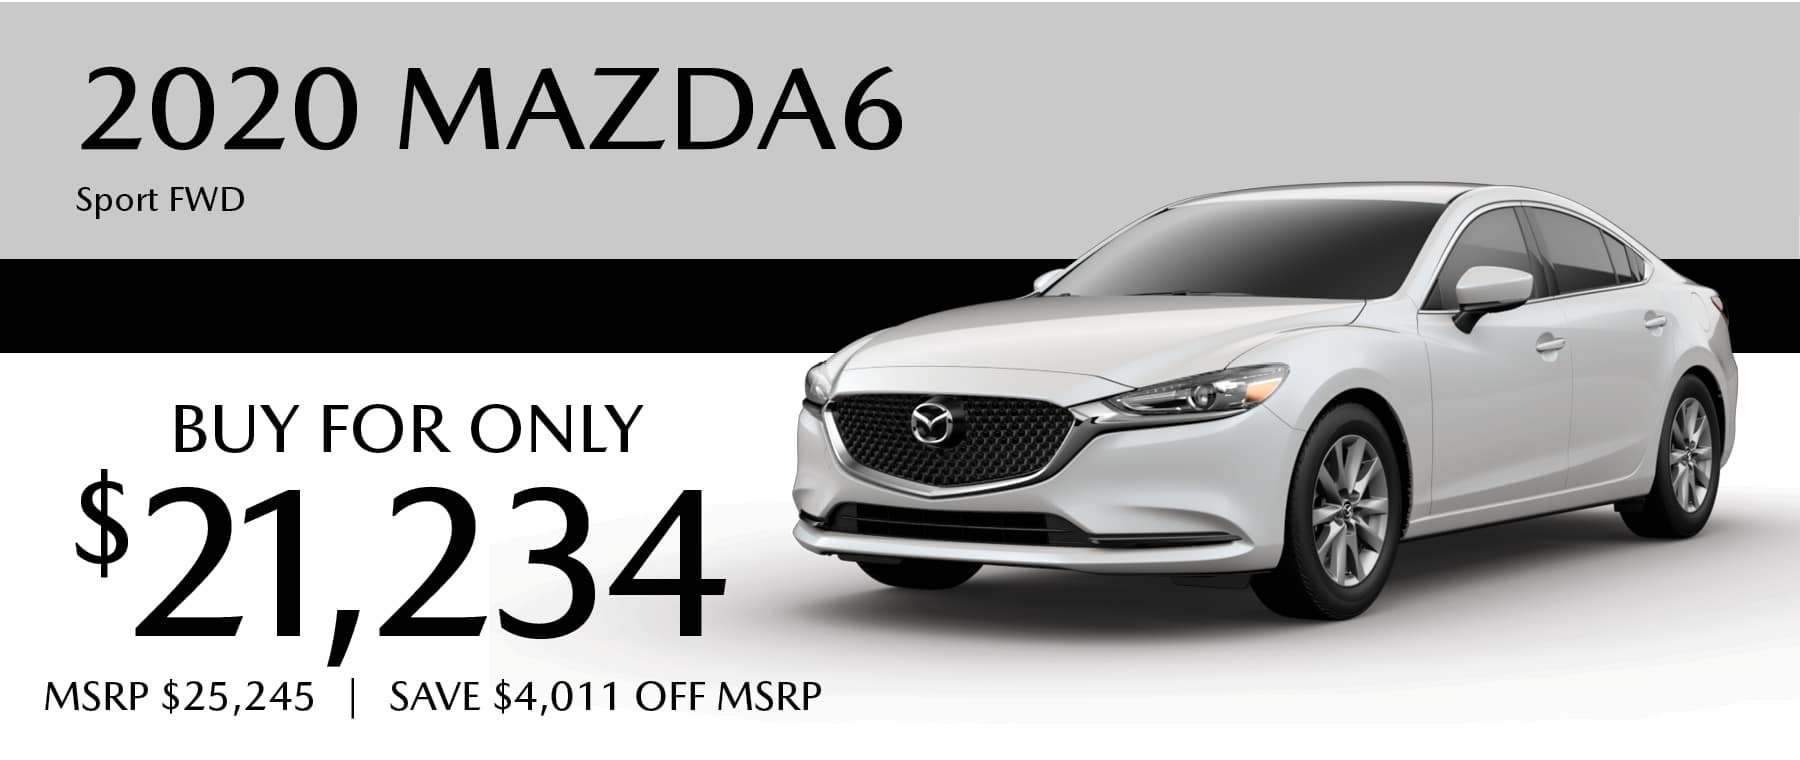 2020 Mazda6 Buy for $21,234 and save $4,011 off MSRP